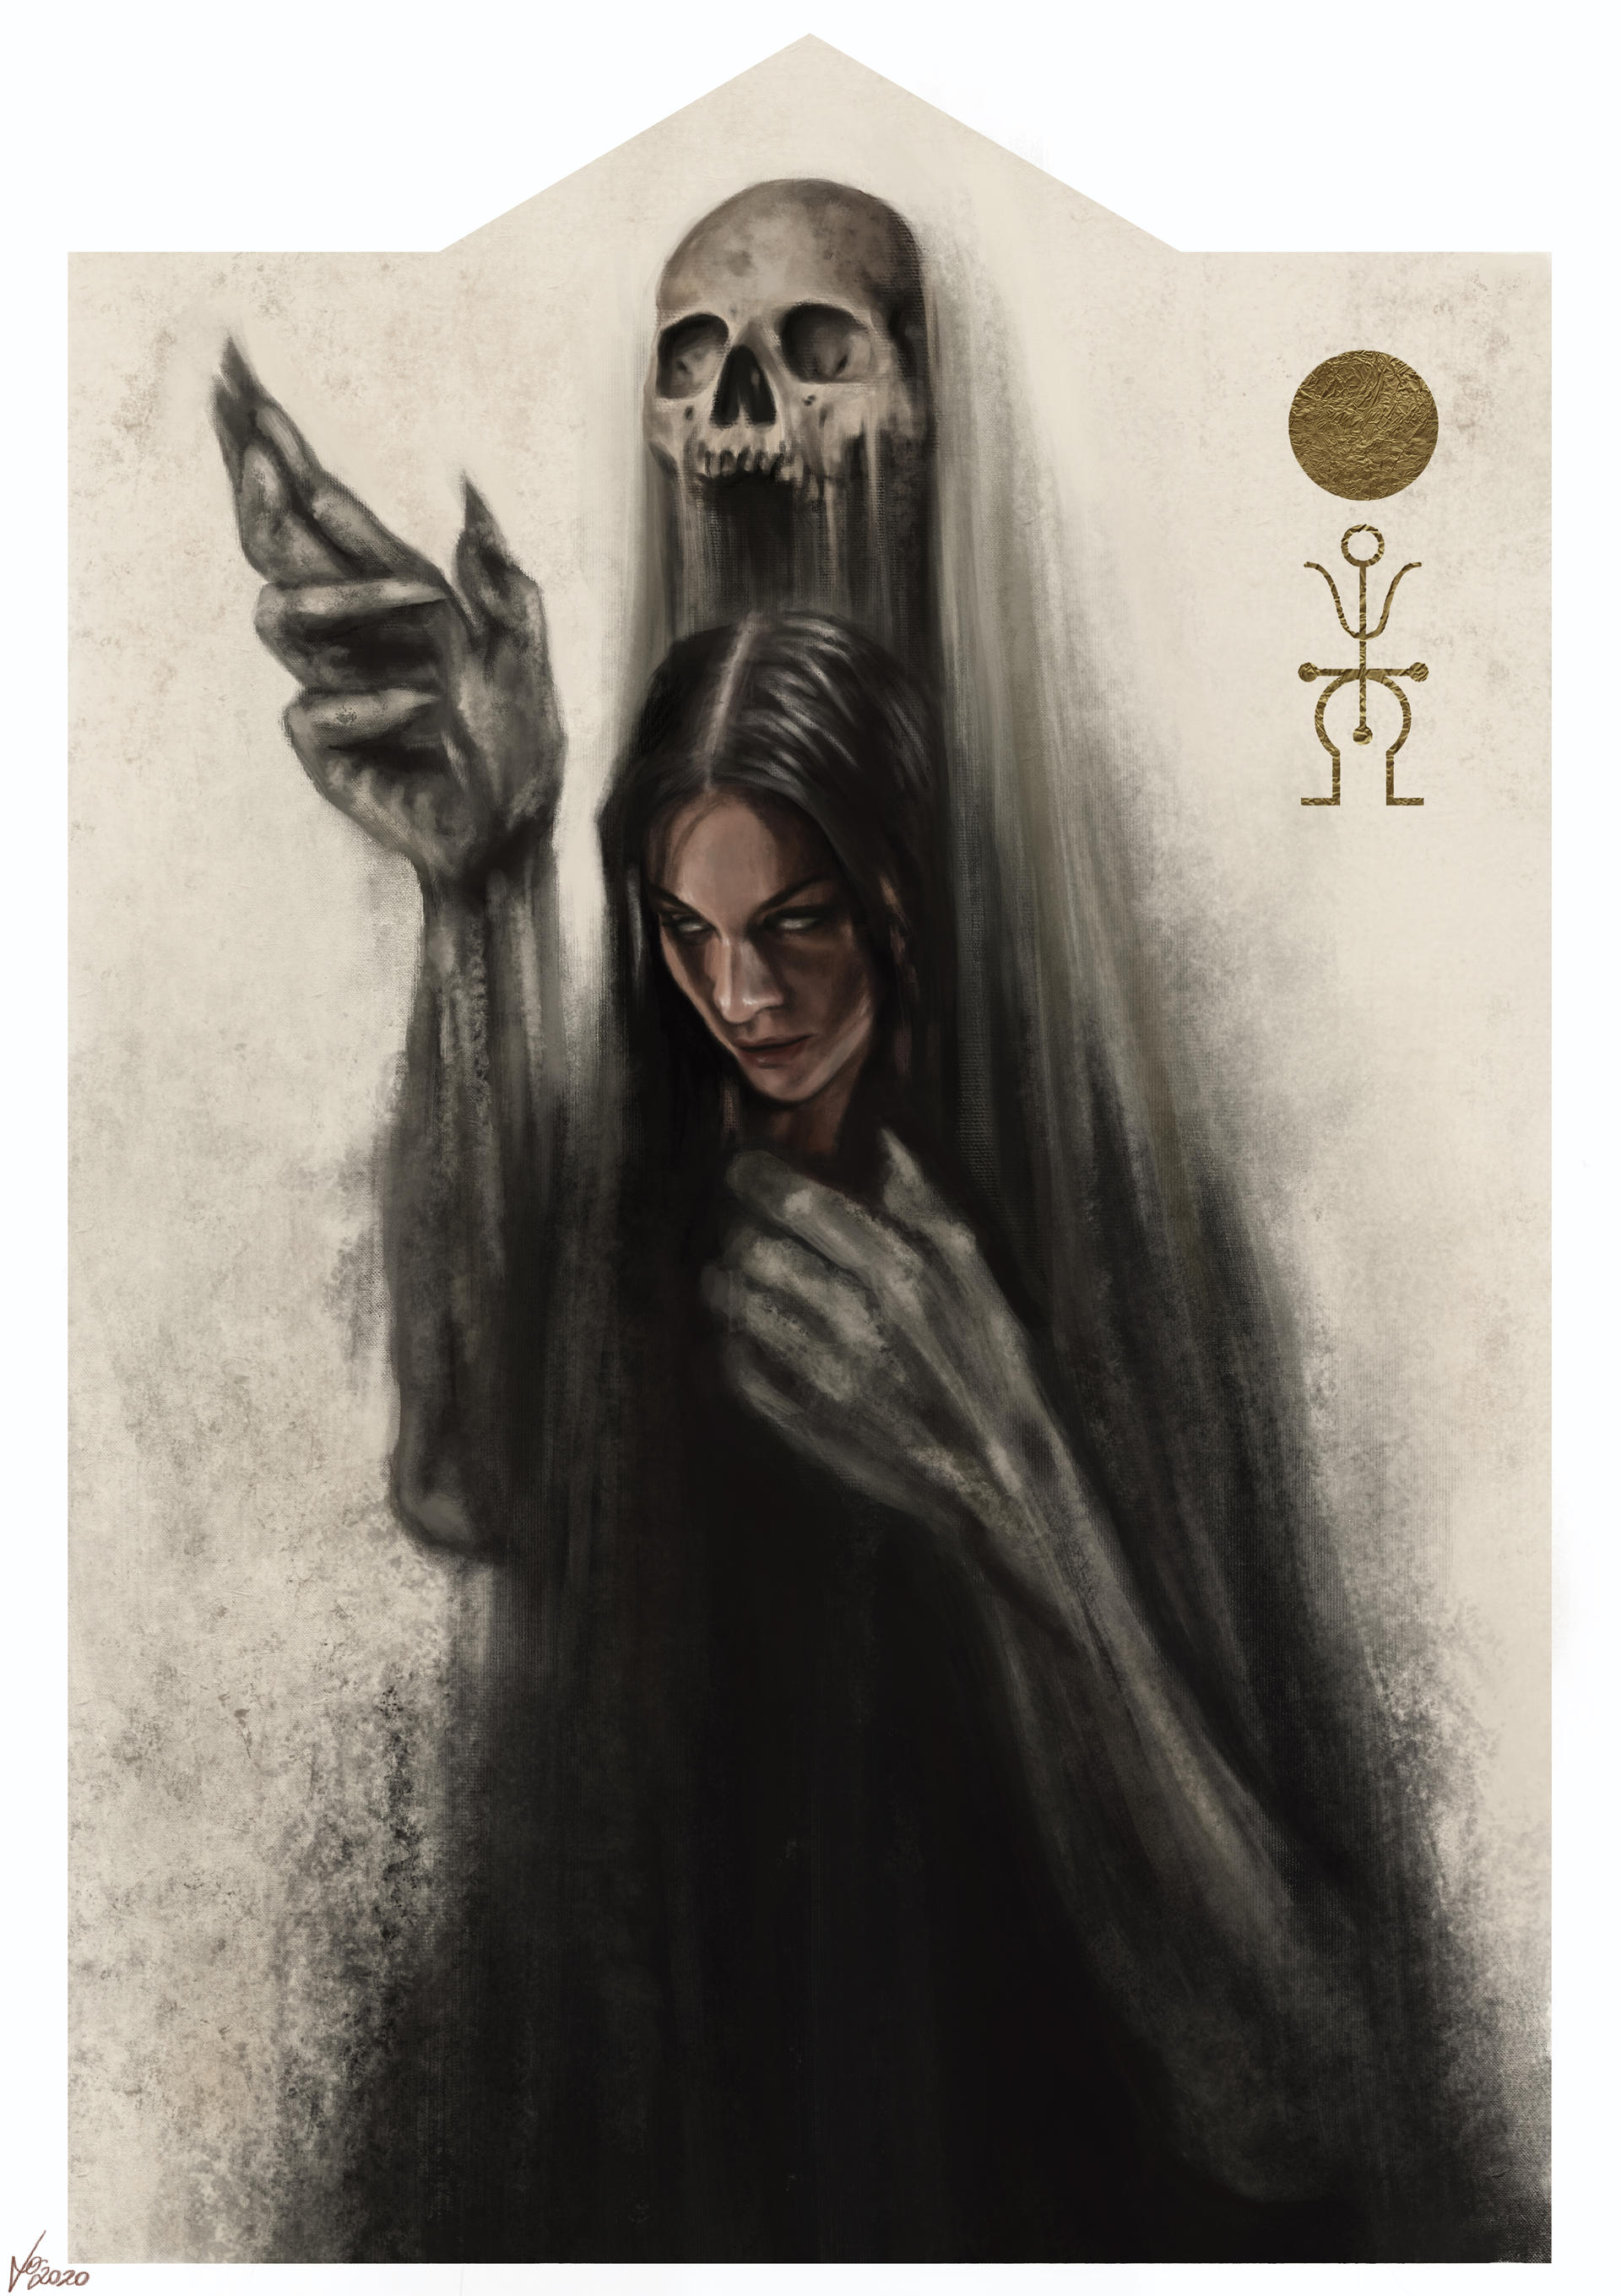 The Maiden becomes Death - August 2020